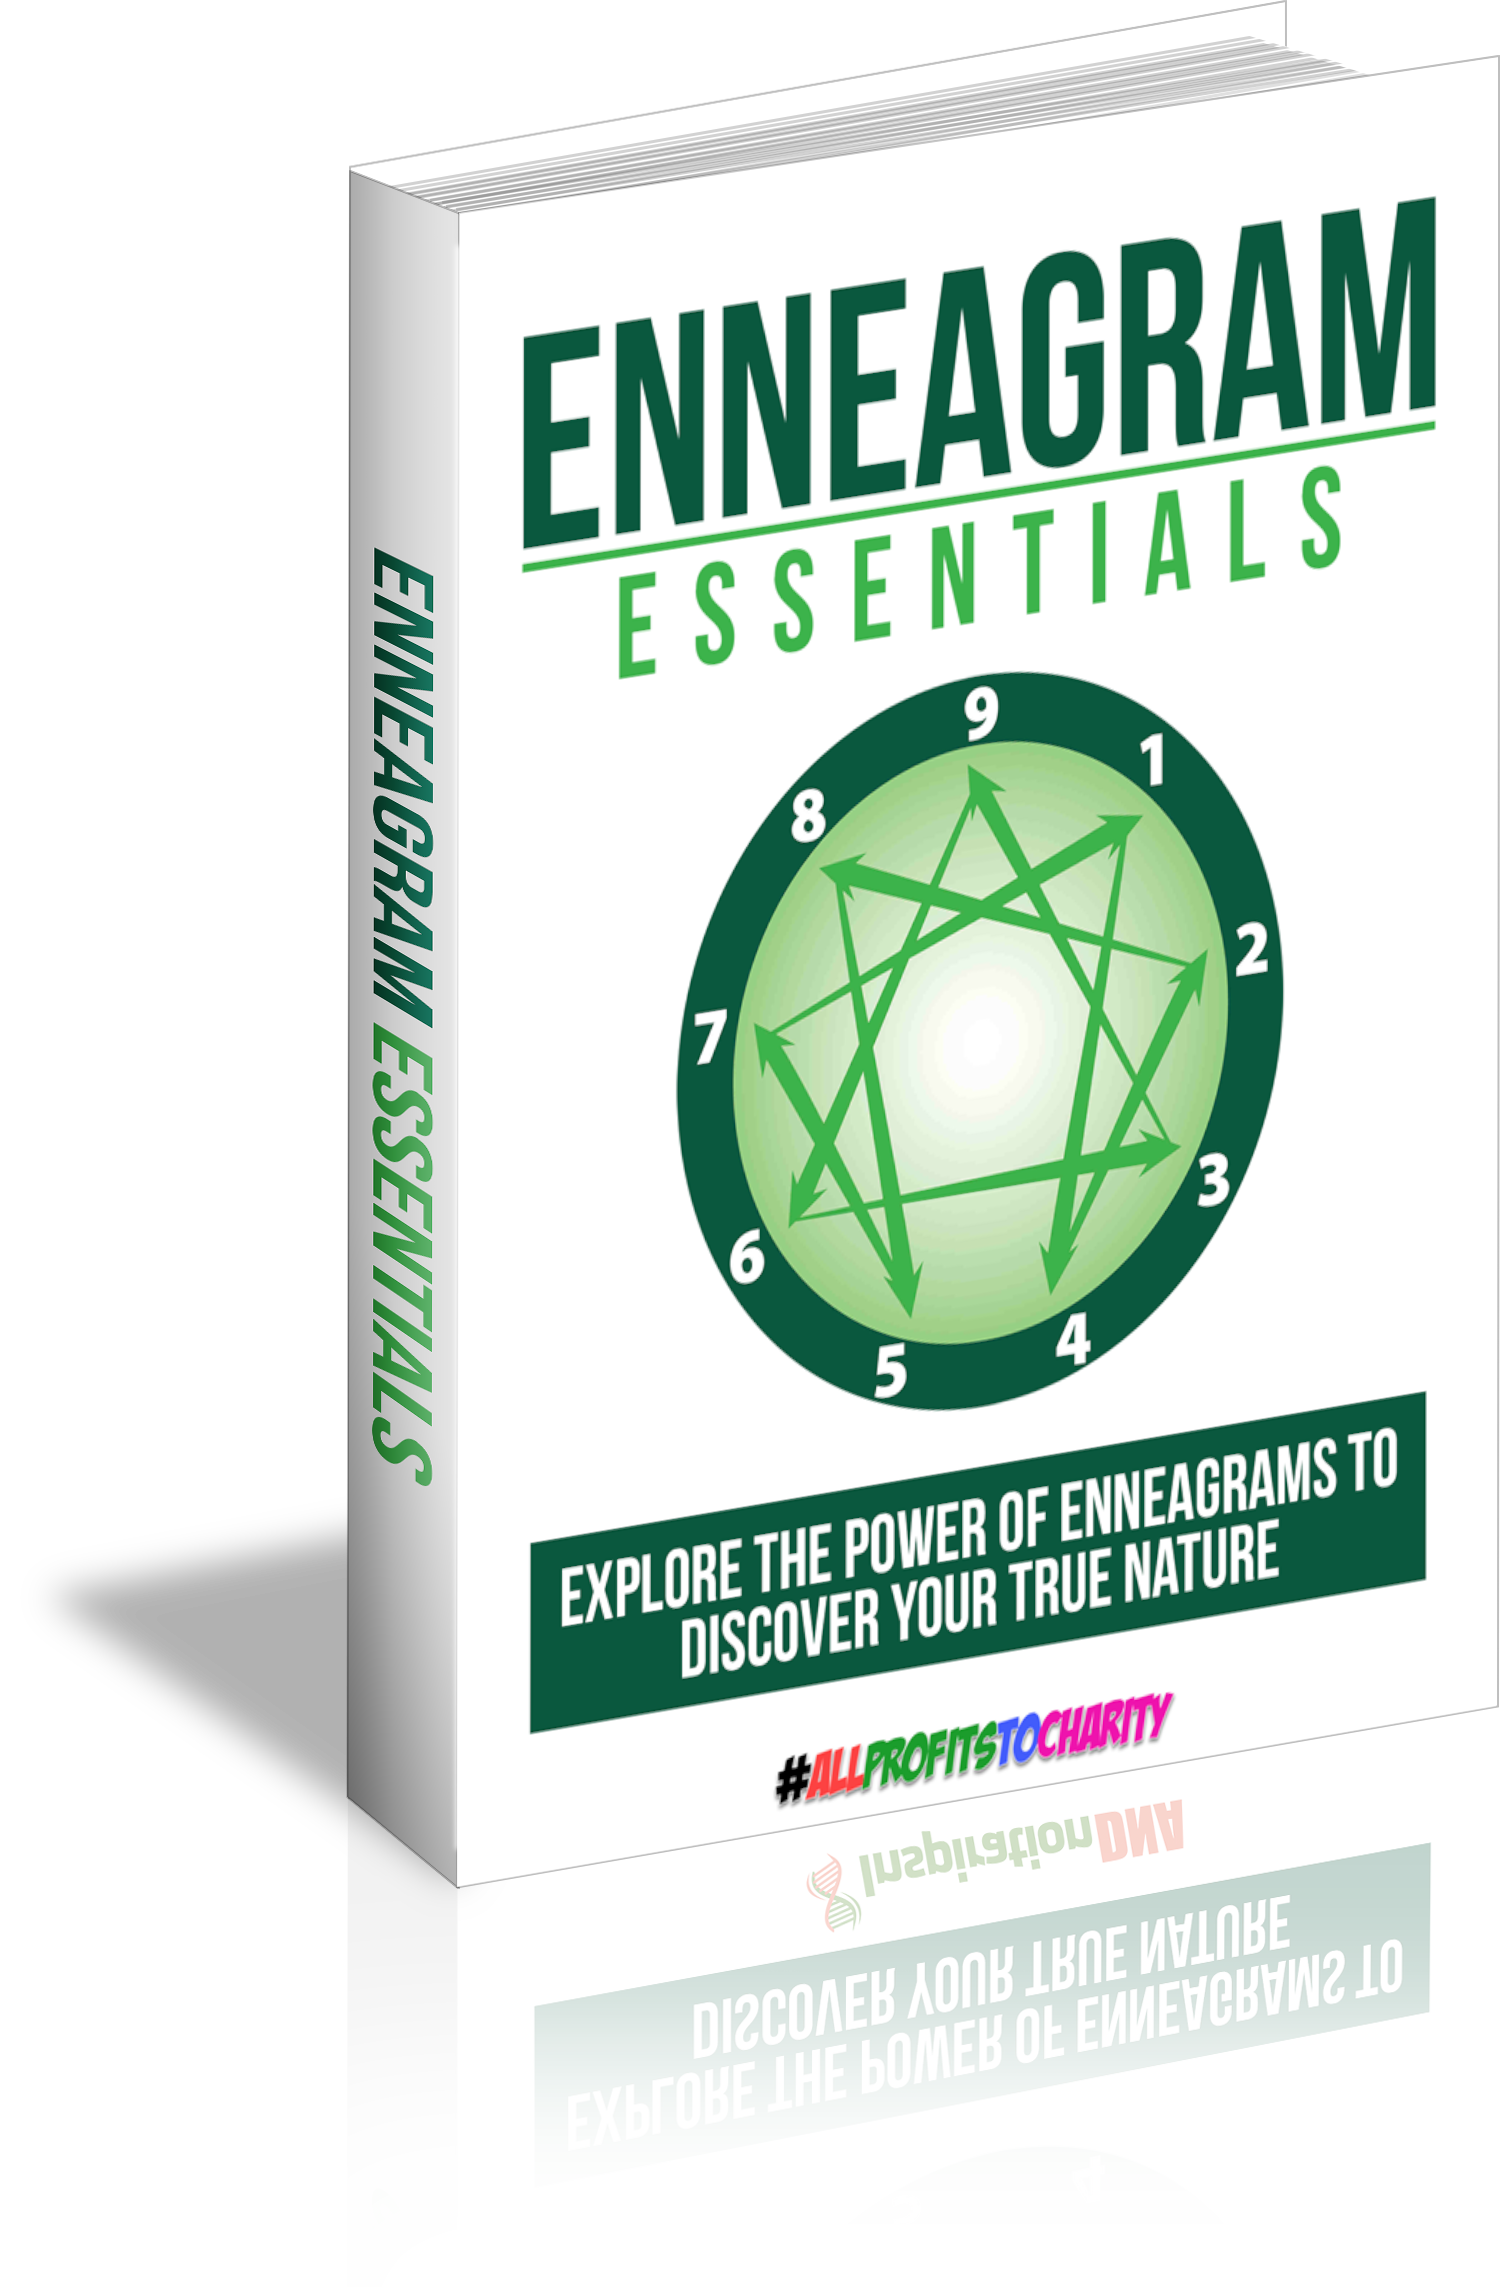 Enneagram Essentials cover